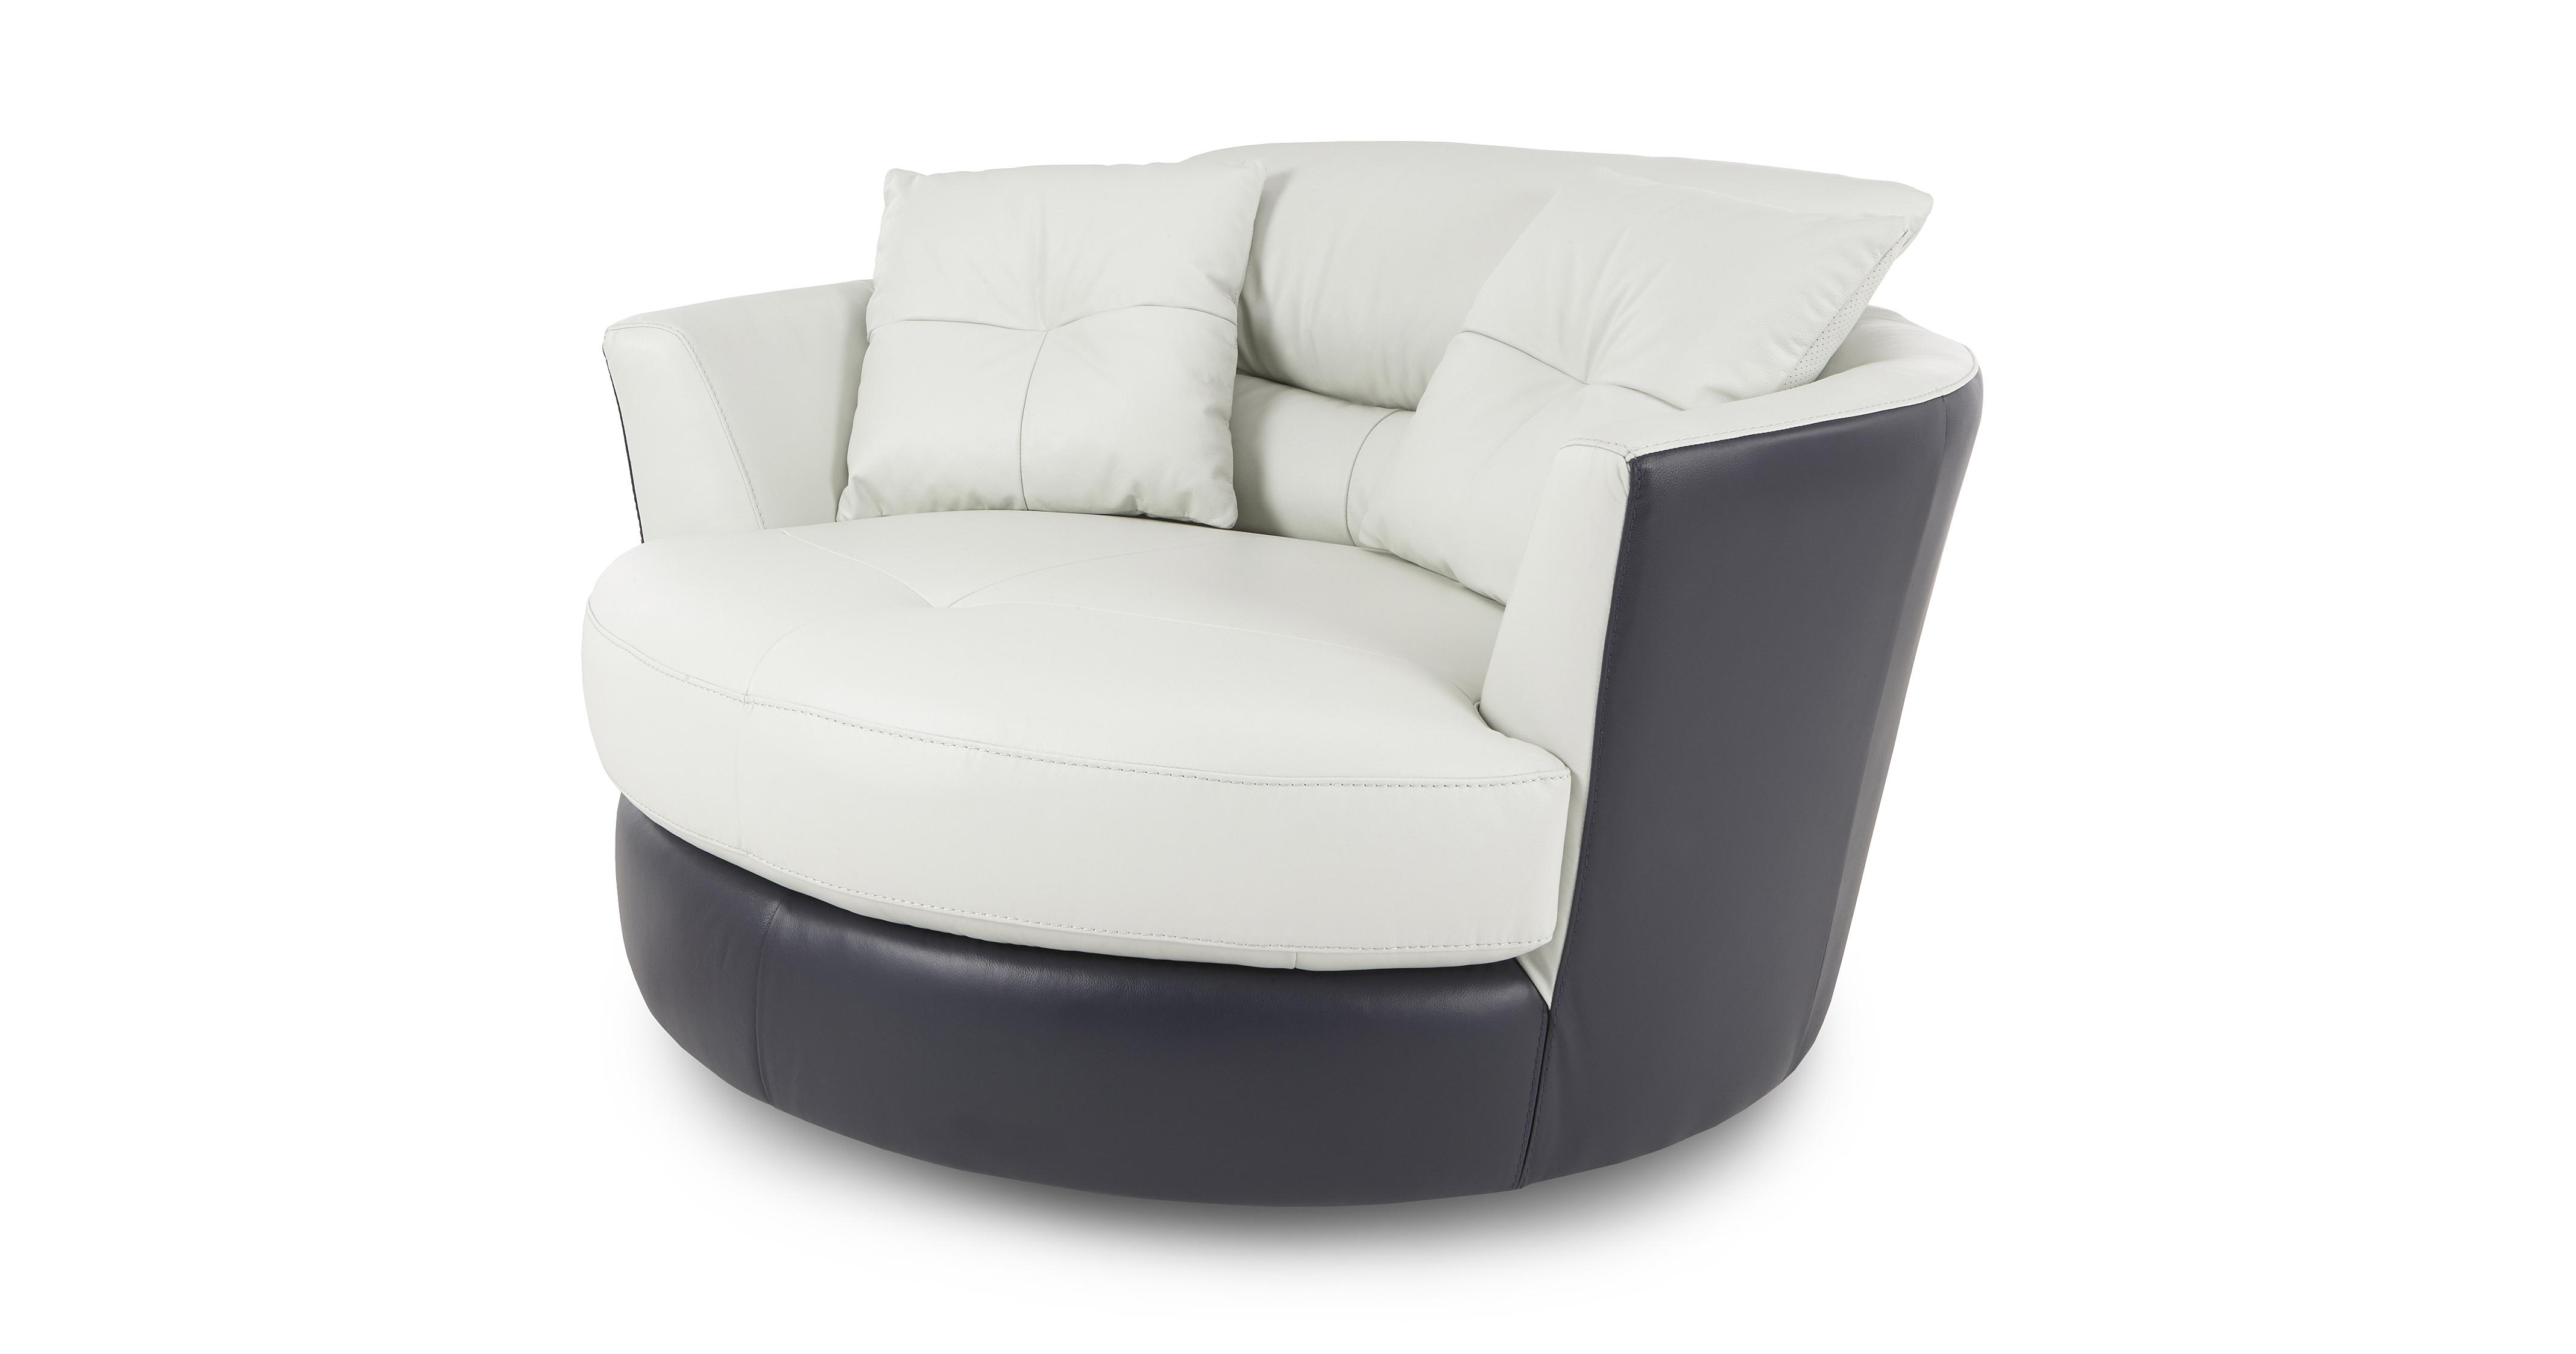 swivel chair and a half tables chairs price dfs azure 100 real aqua white leather set inc